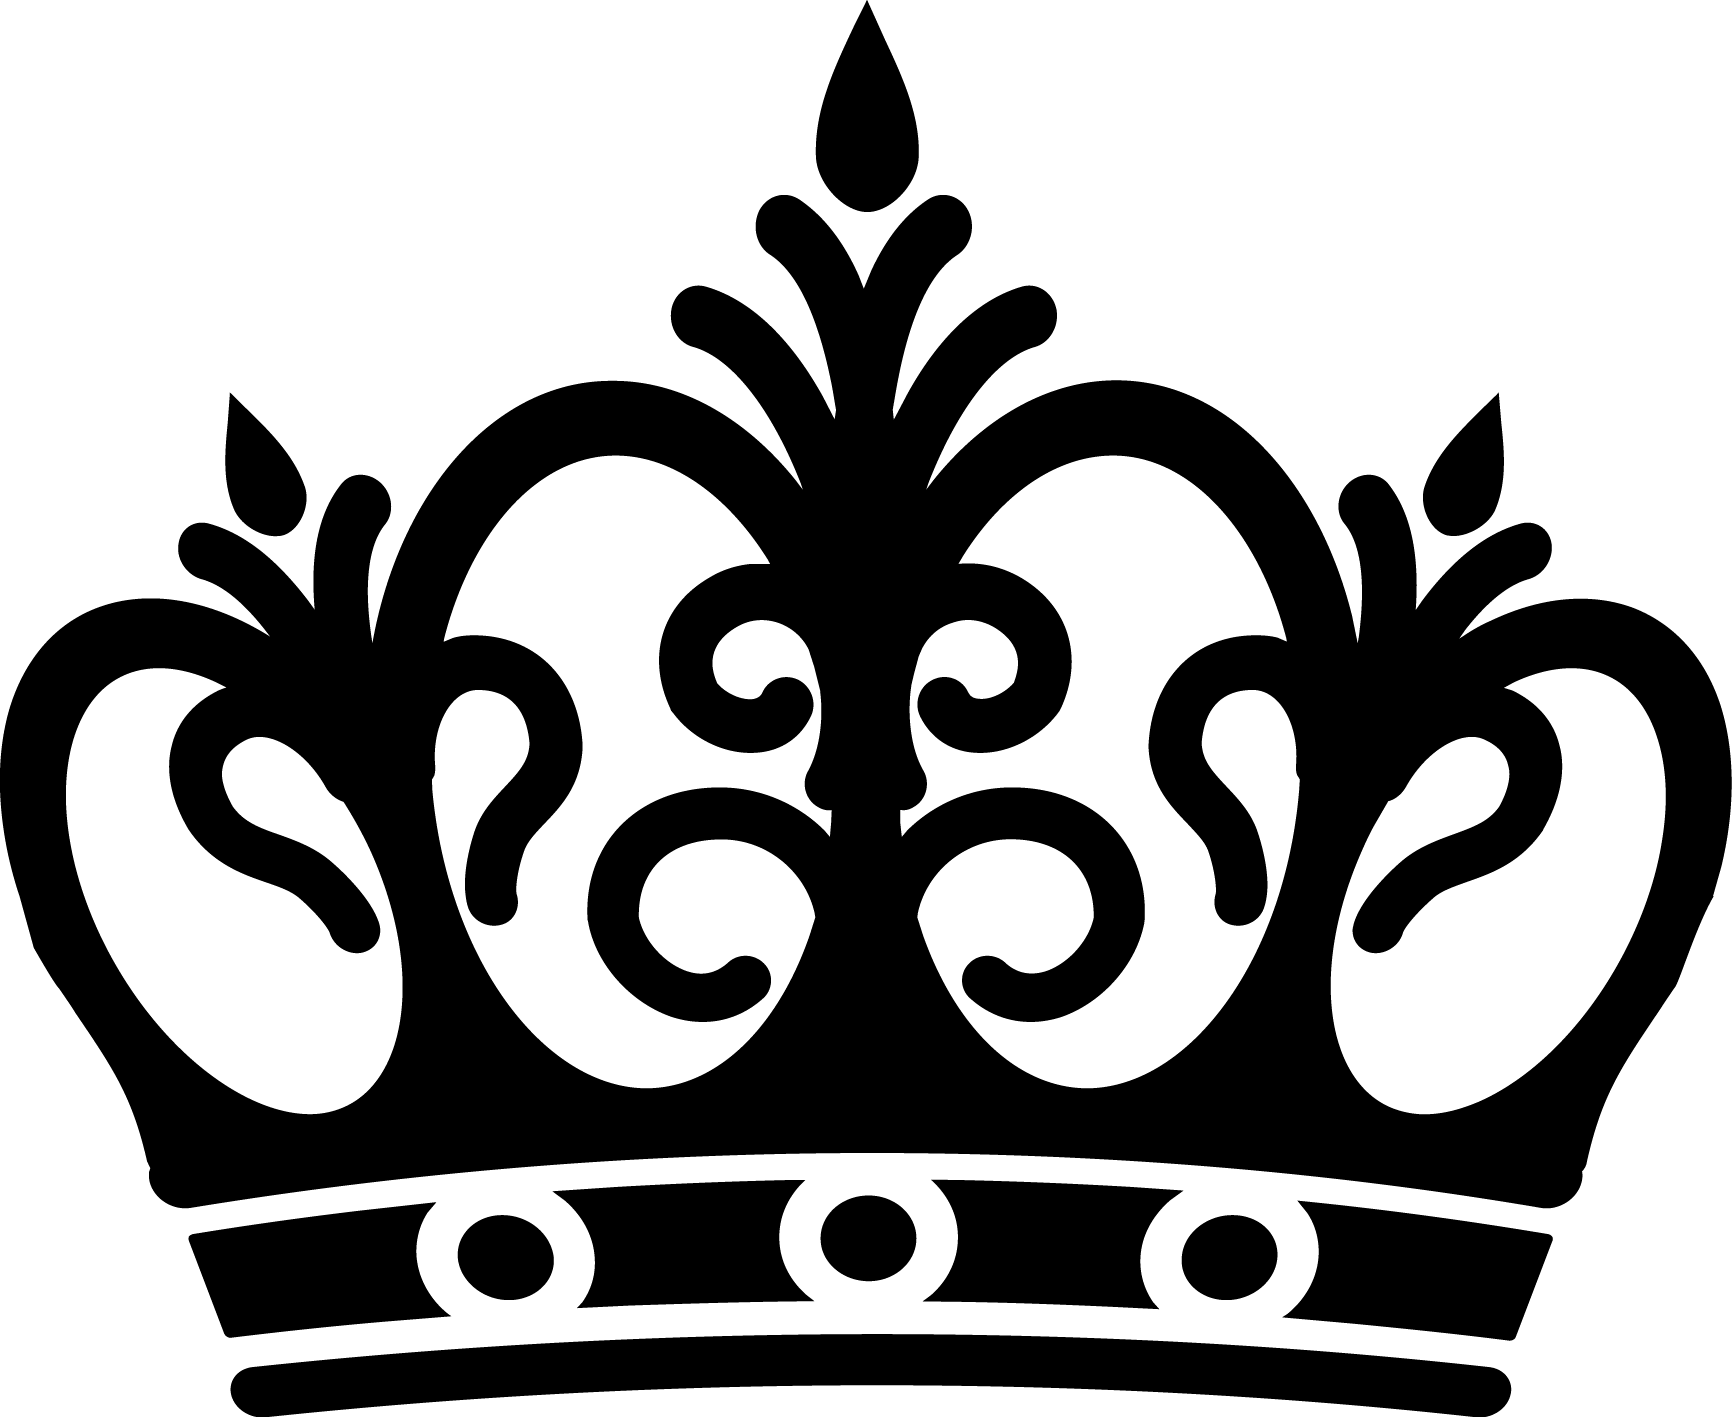 crown vector png - Buscar con Google | Tatuajes | Pinterest | Crown ... svg transparent library